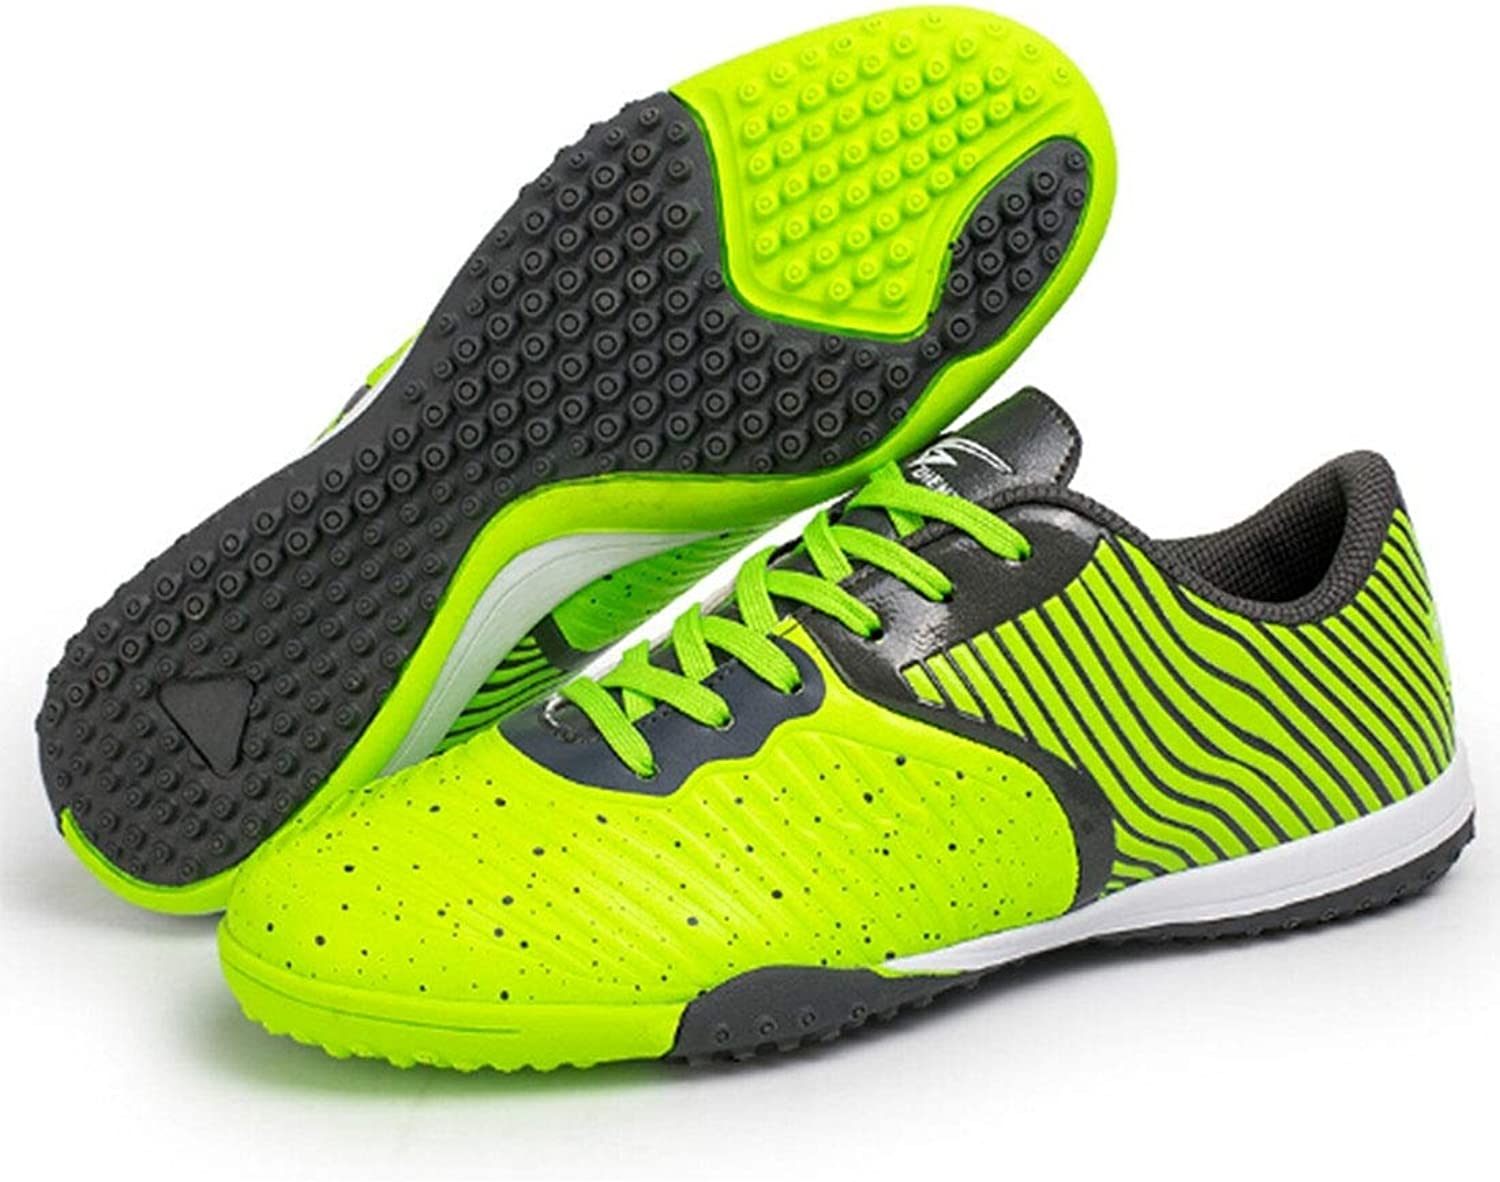 Linmatealliance Outdoor&Sports shoes Zhenzu Outdoor Sporting Professional Training 3D Stereoscopic Print Antislip Football shoes, EU Size  40(Green)